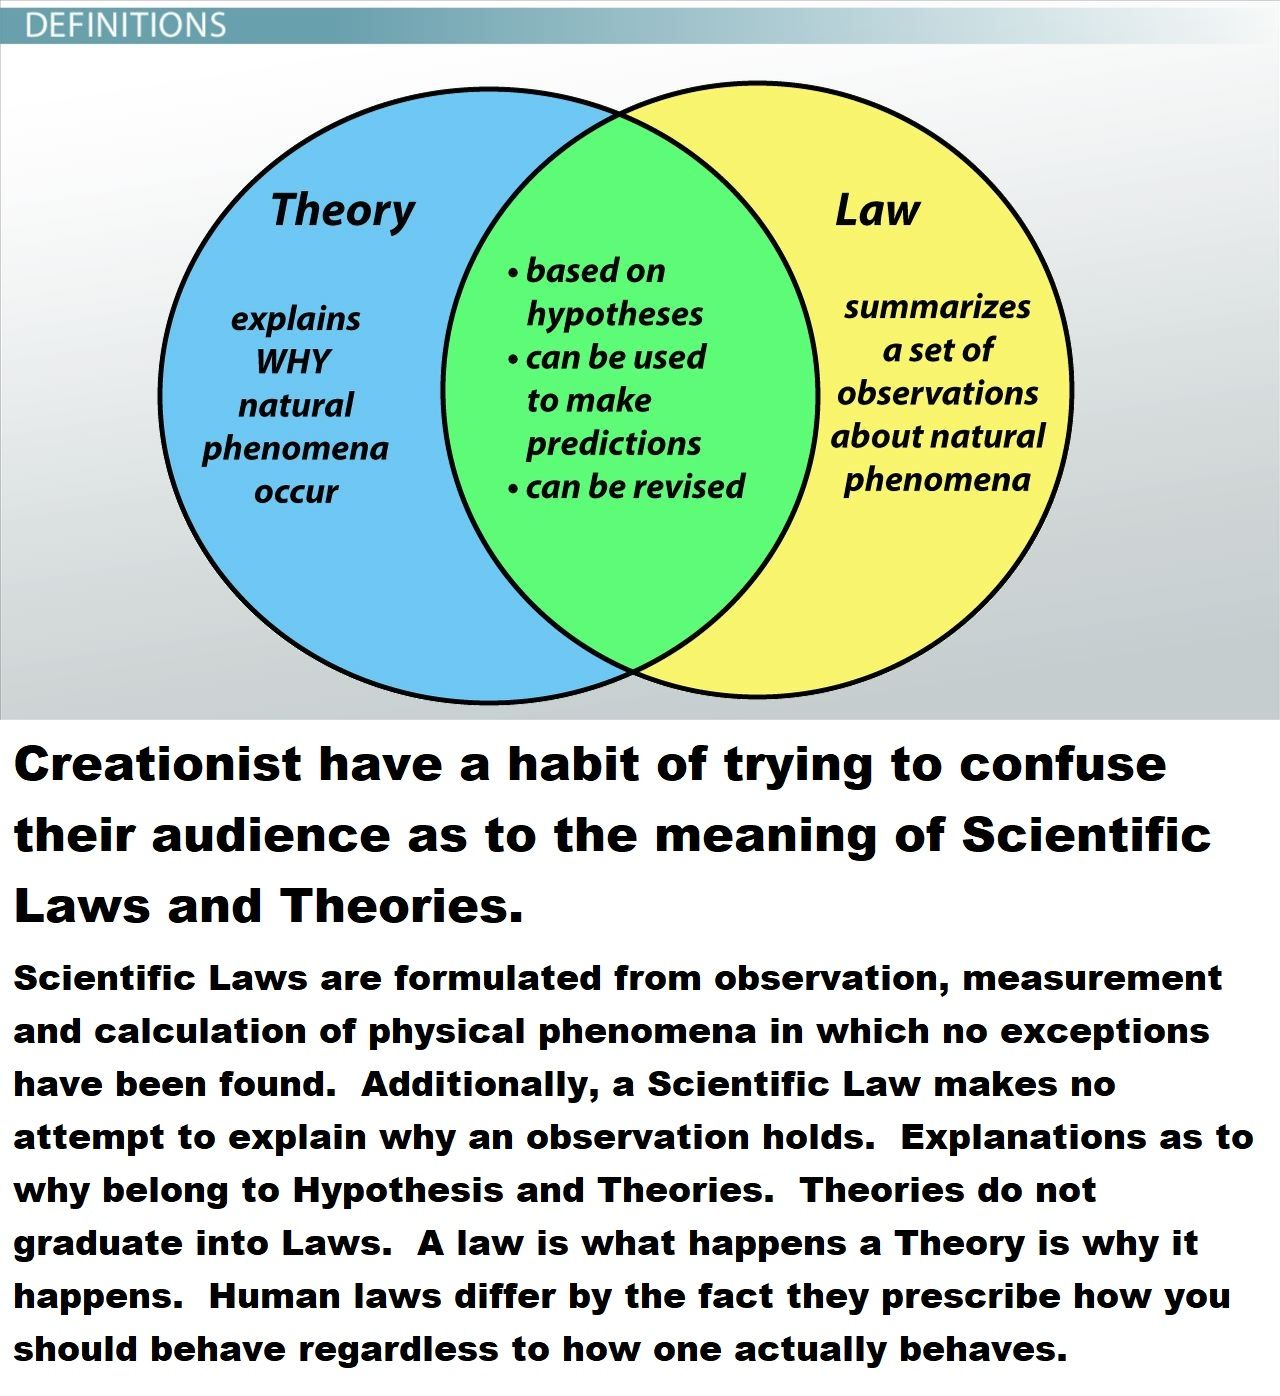 Creationist Have A Habit Of Trying To Confuse Their